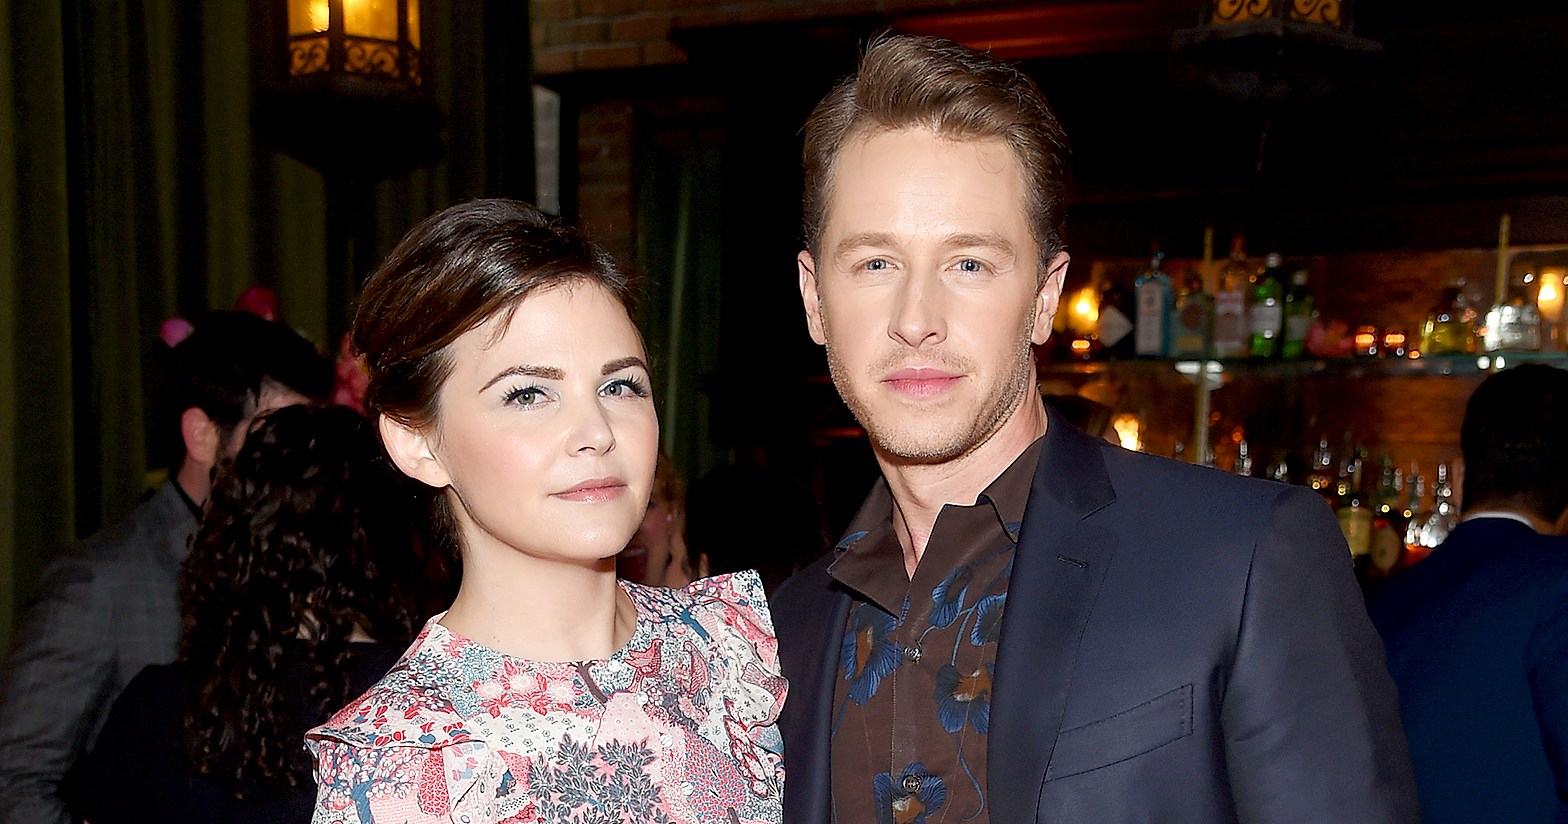 Ginnifer Goodwin Reveals What Josh Dallas Buys to Keep Their Marriage Hot When He Travels